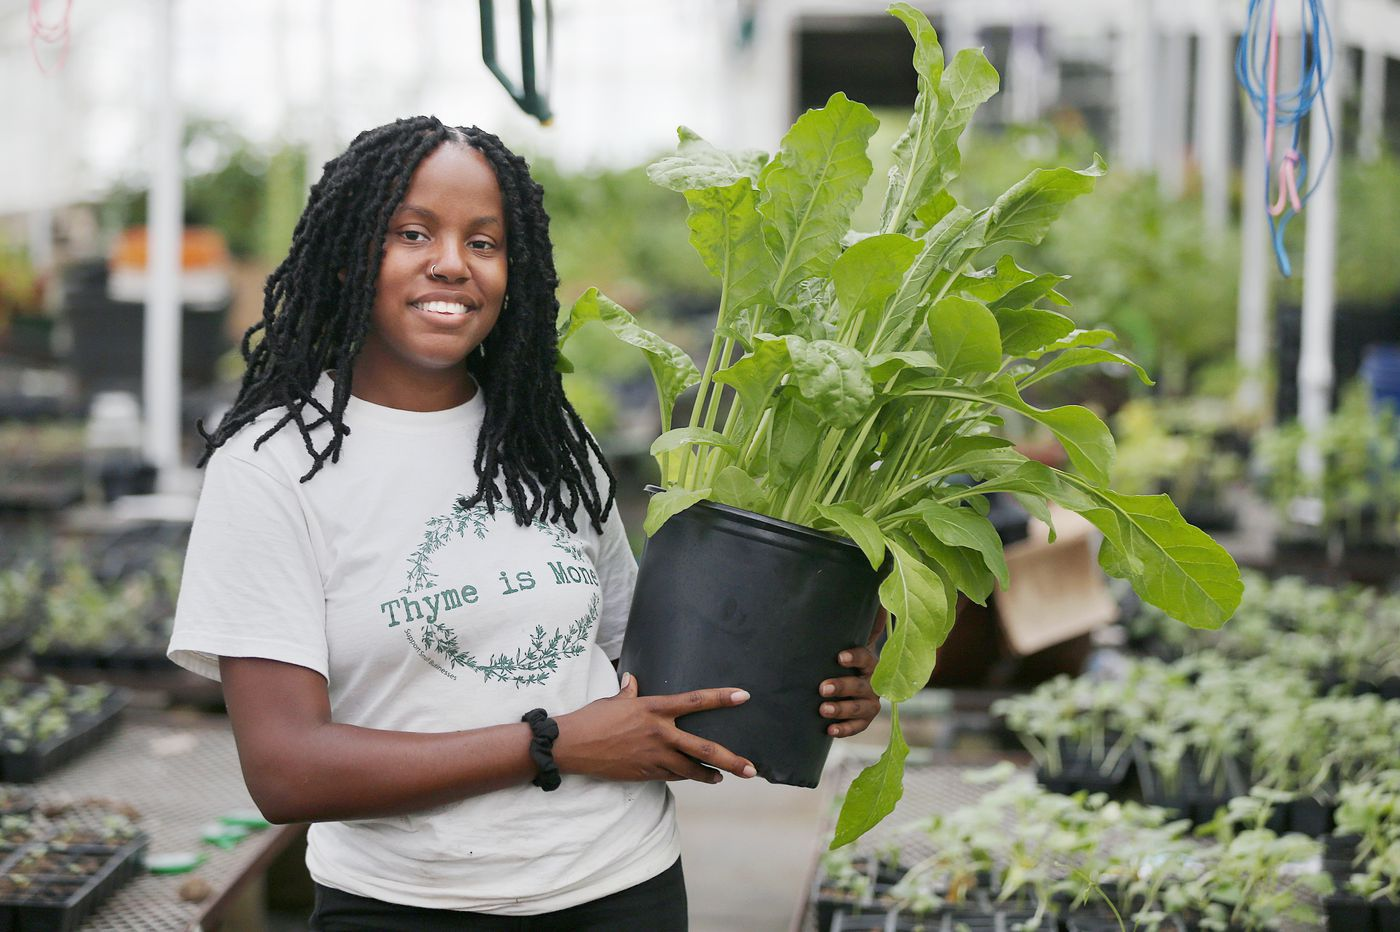 An Airbnb stay with Caribbean farmers inspired this Philly woman to create FarmerJawn CSA | We The People